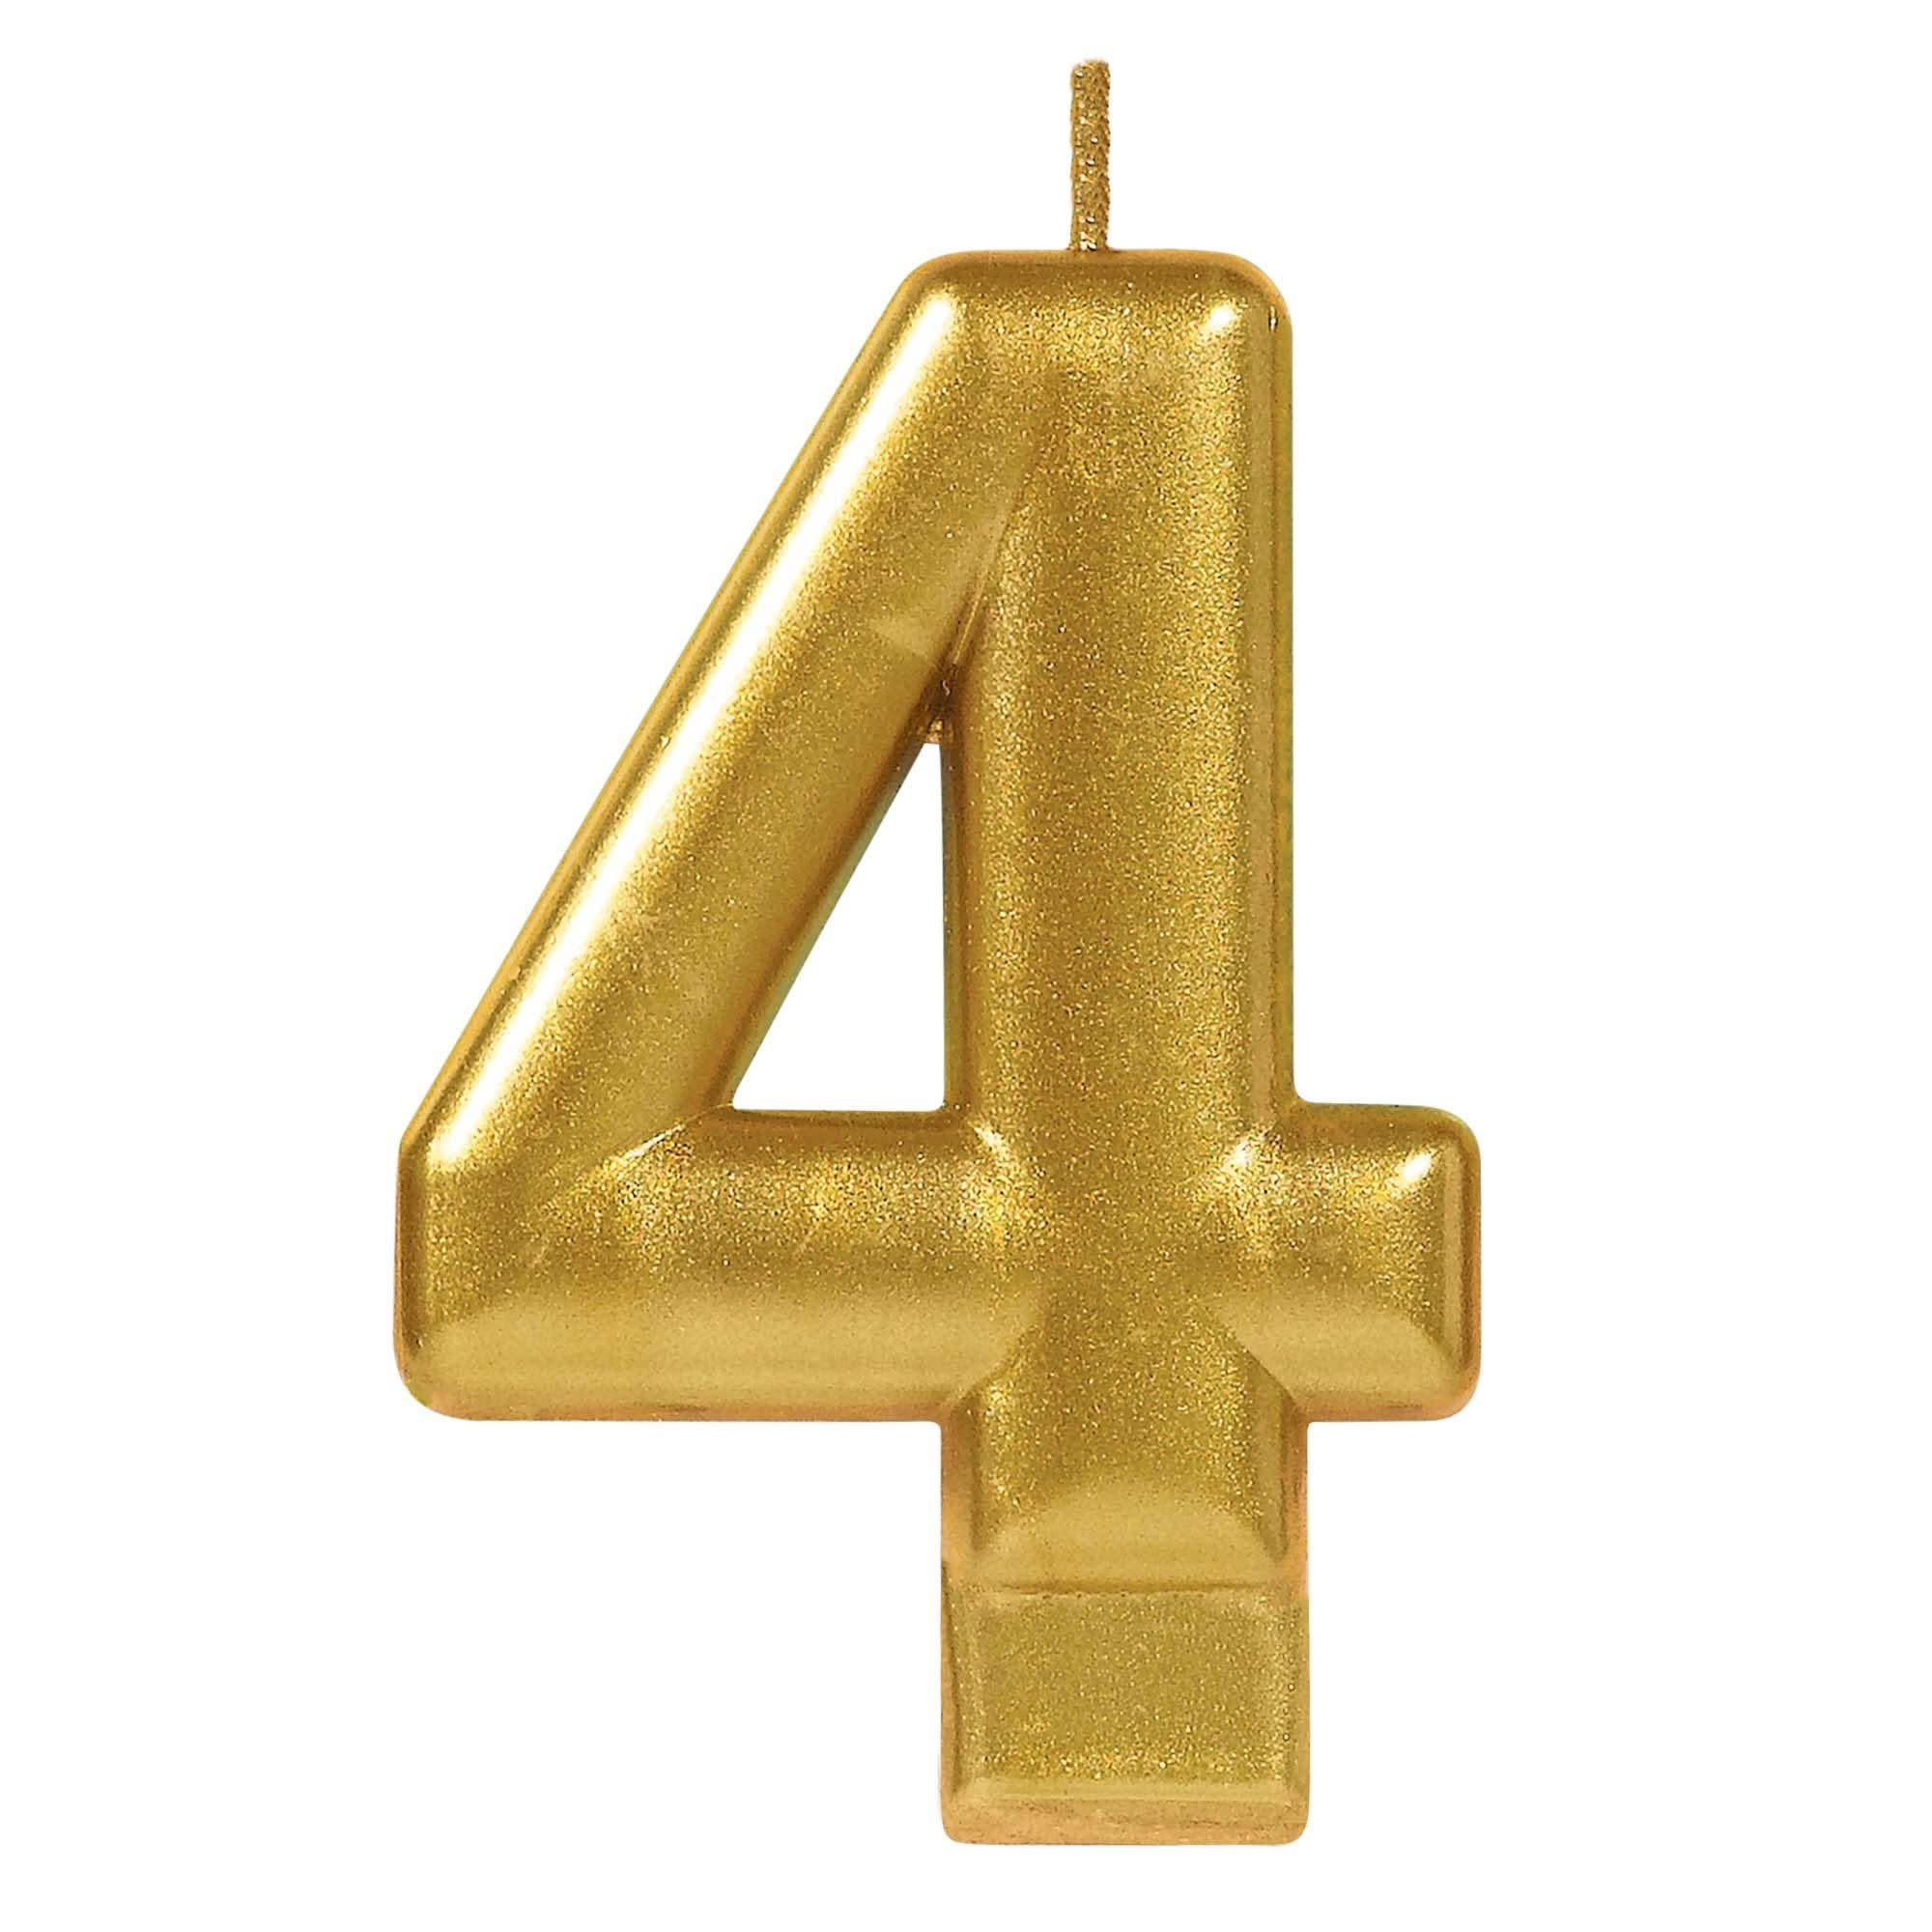 Numeral #4 Metallic Candle - Gold